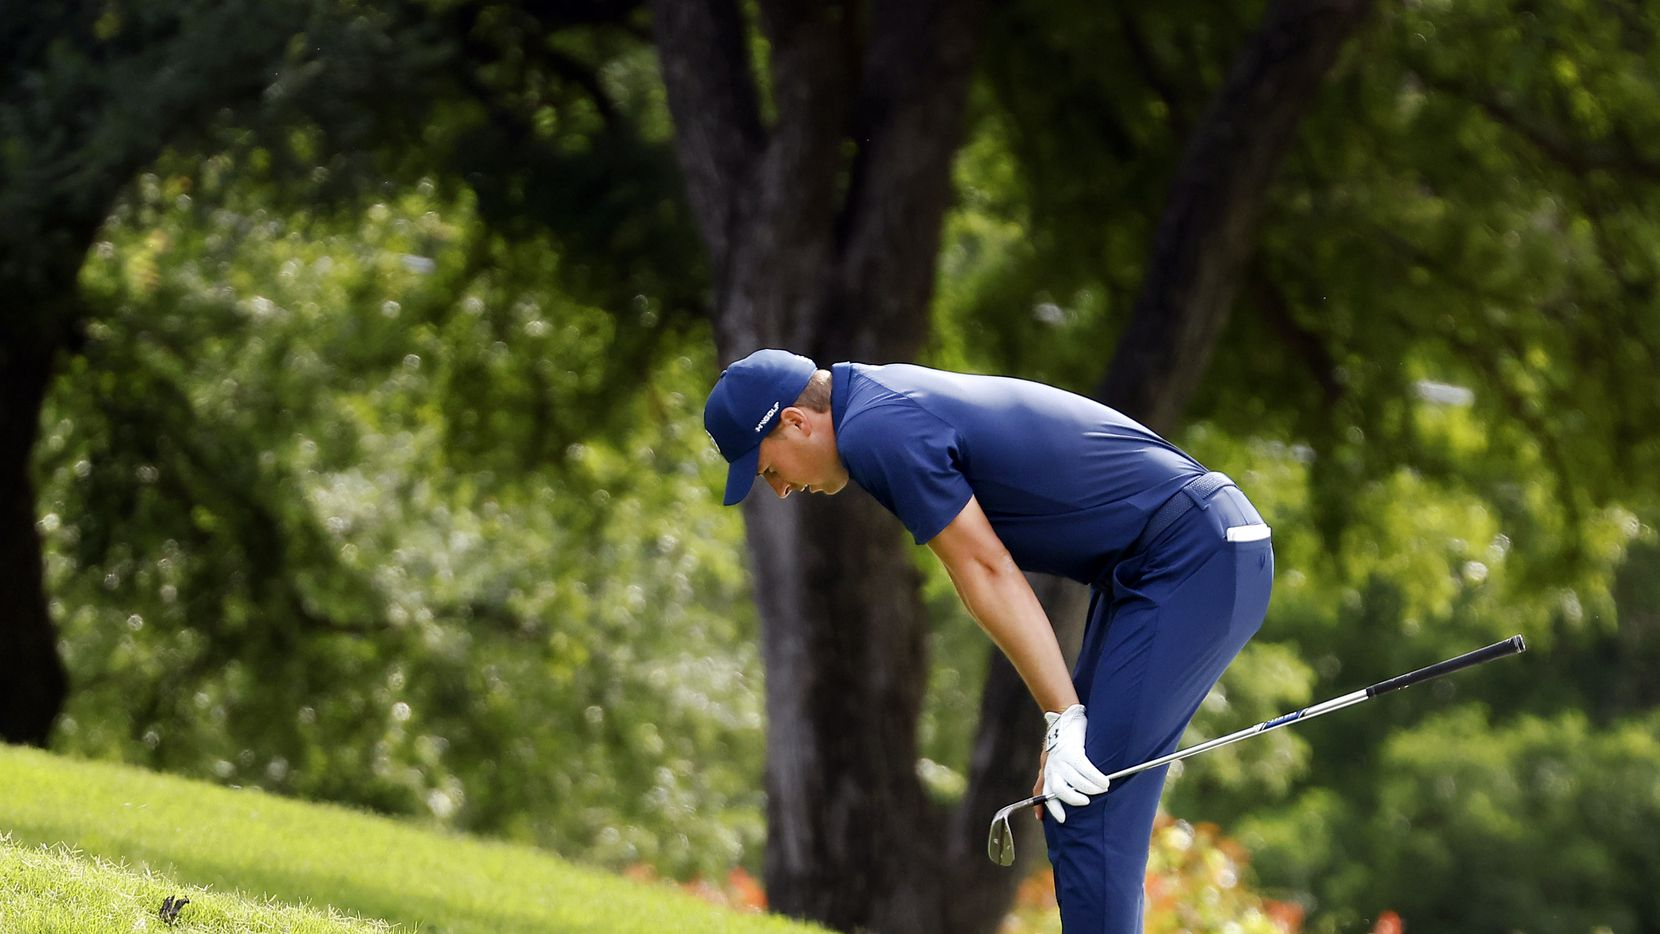 Professional golfer Jordan Spieth reacts after his approach shot fell short of the No. 15 green during the final round of the Charles Schwab Challenge at the Colonial Country Club in Fort Worth, Sunday, May 30, 2021. Spieth finished second, 2 shots behind Jason Kokrak.